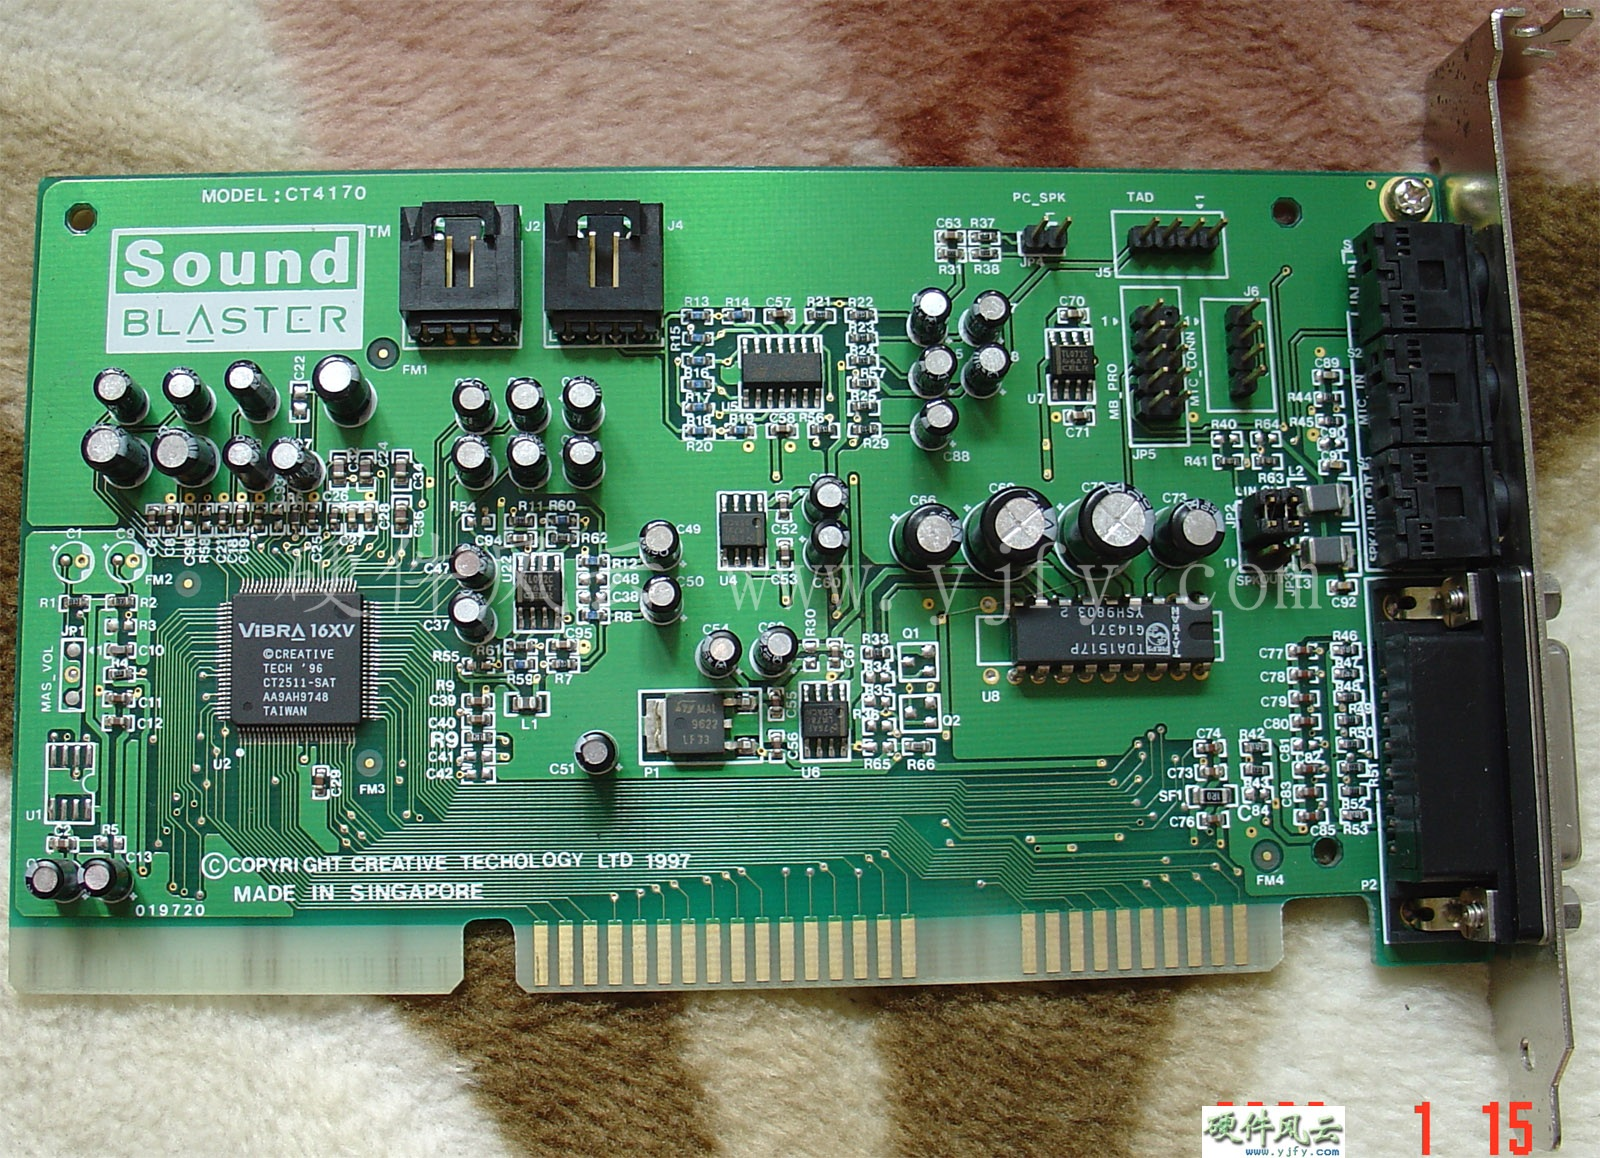 Sound blaster ct4870 xp